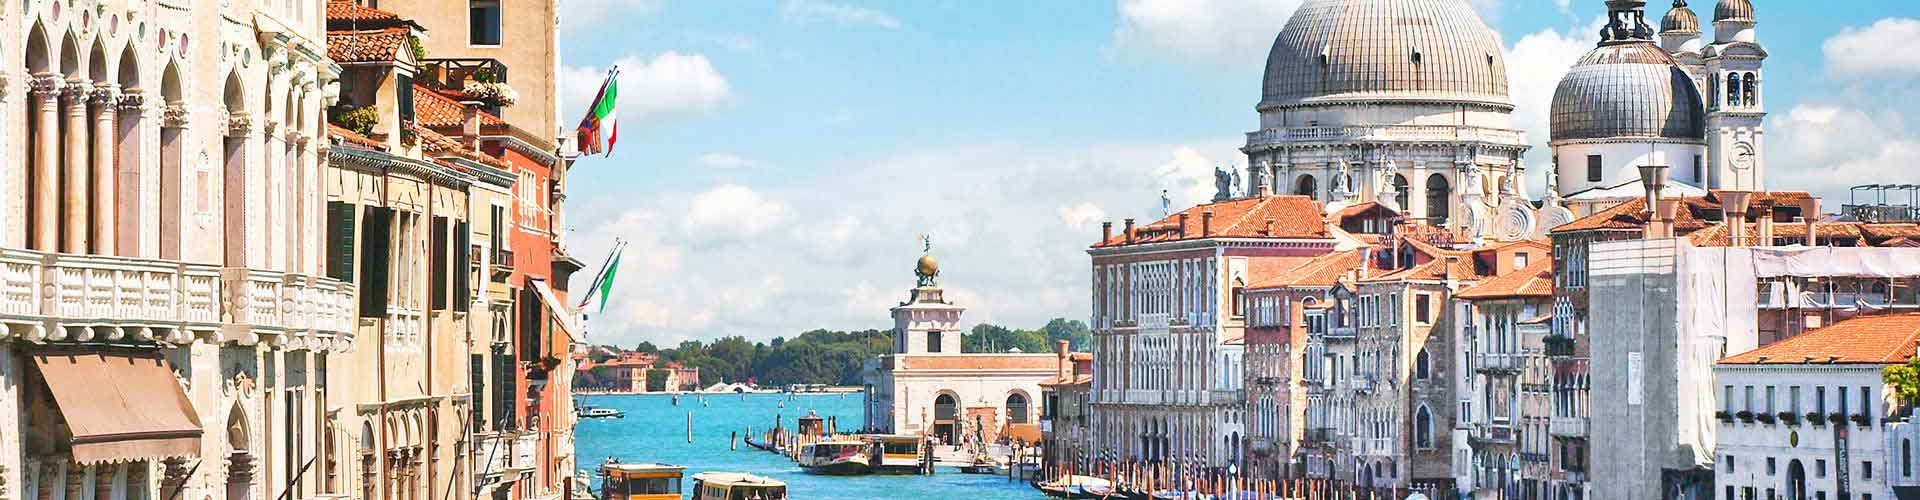 Venice – Hostels in Venice. Maps for Venice, Photos and Reviews for each hostel in Venice.